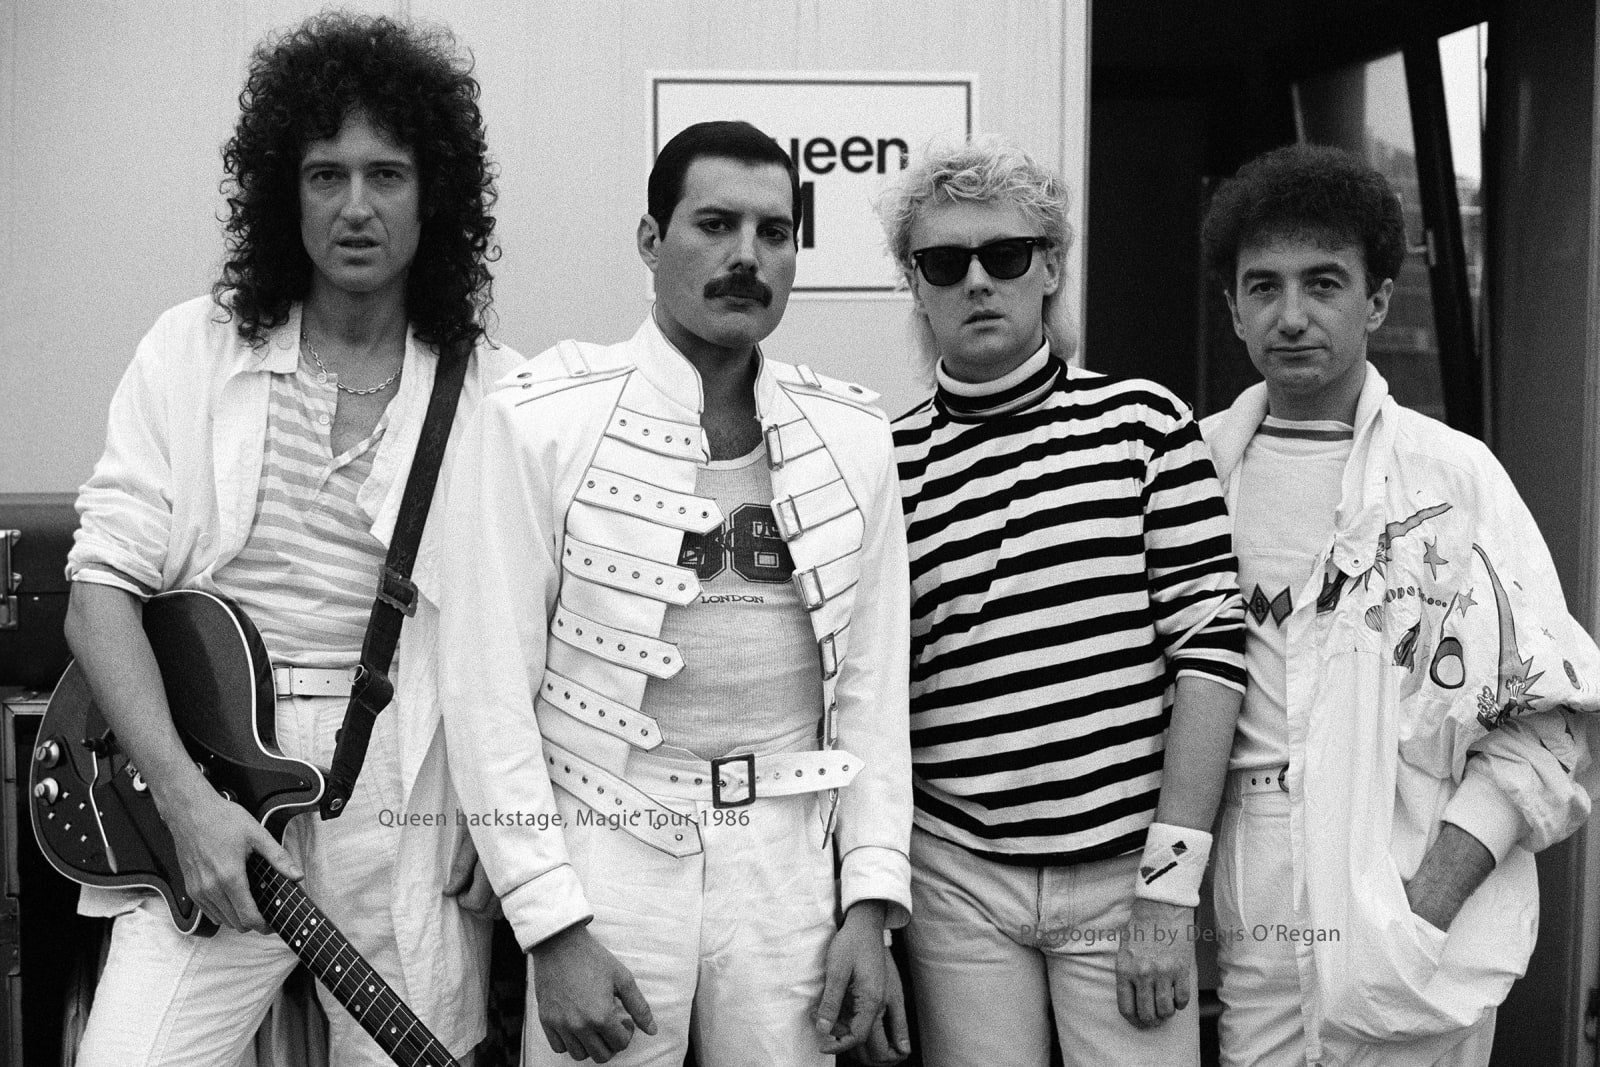 QUEEN, Queen backstage, 1986